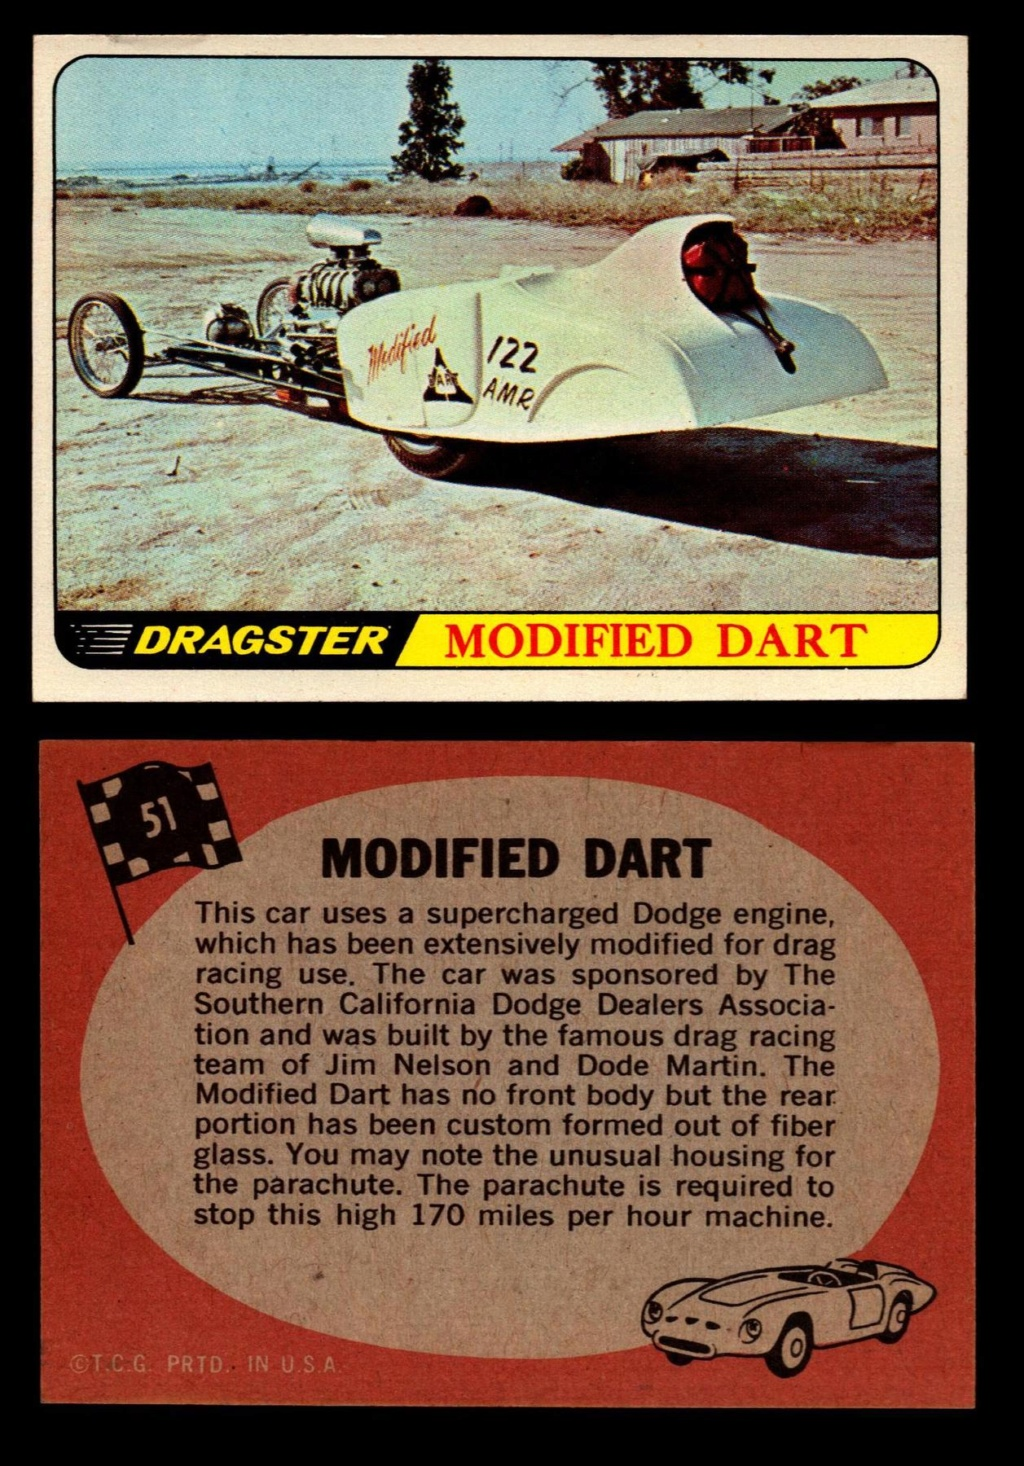 Hot Rods Topps - Vintage Trading Cards 1968 - Custom car - Dragster - Racer - Dream car - Barris Kustom City - Ed Roth Darrill Starbird, Gene Winfield, Bill Cuchenberry - Page 2 51_15510